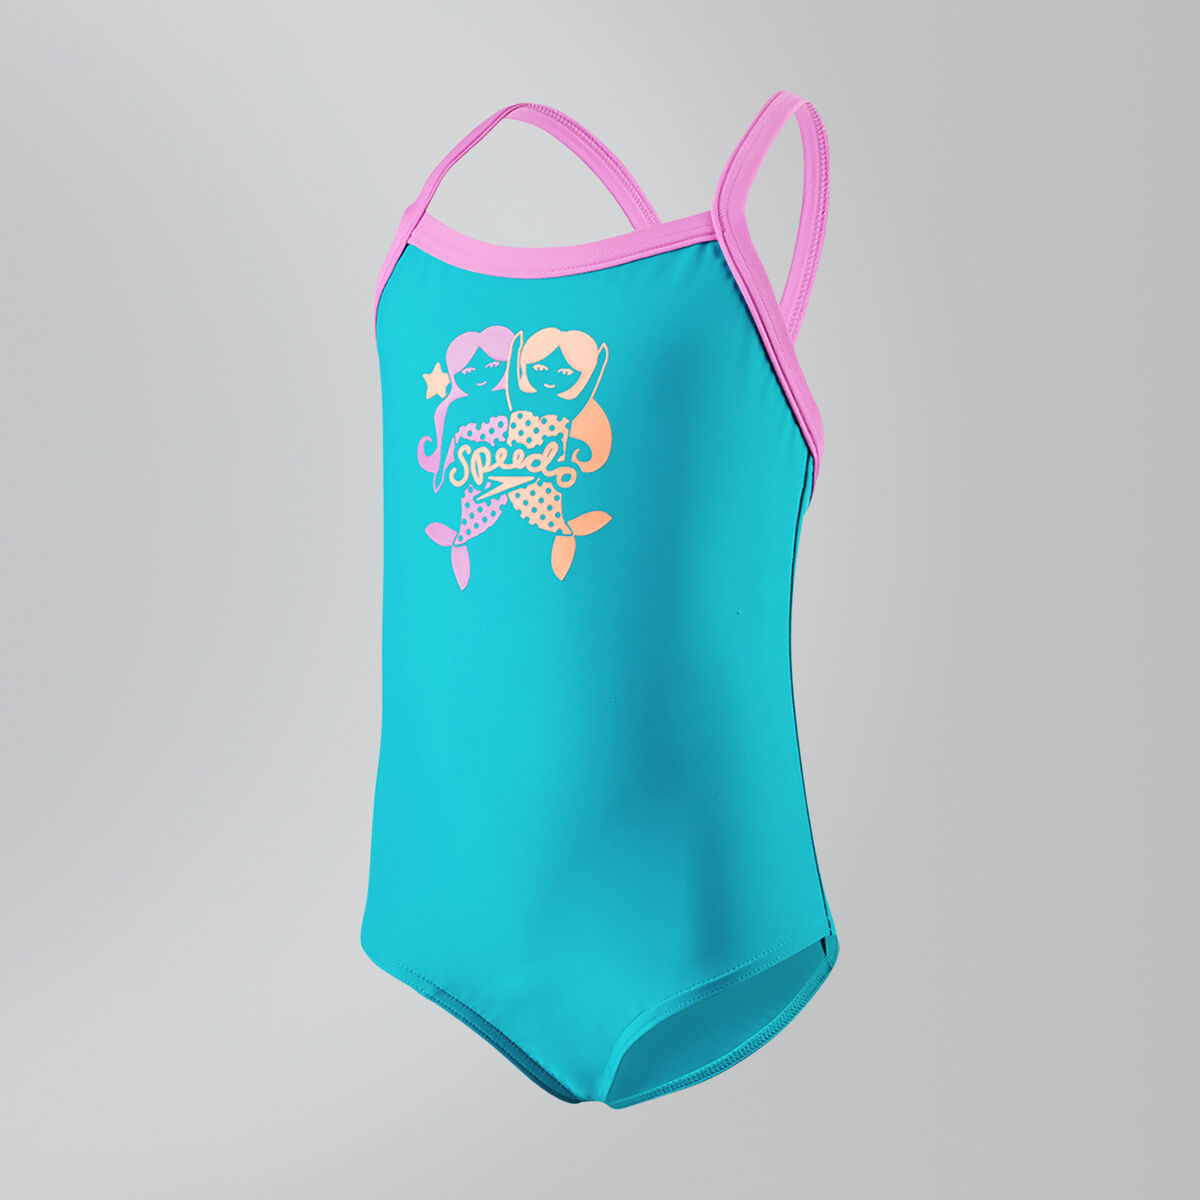 Blowing Bubbles Essential Thinstrap Swimsuit